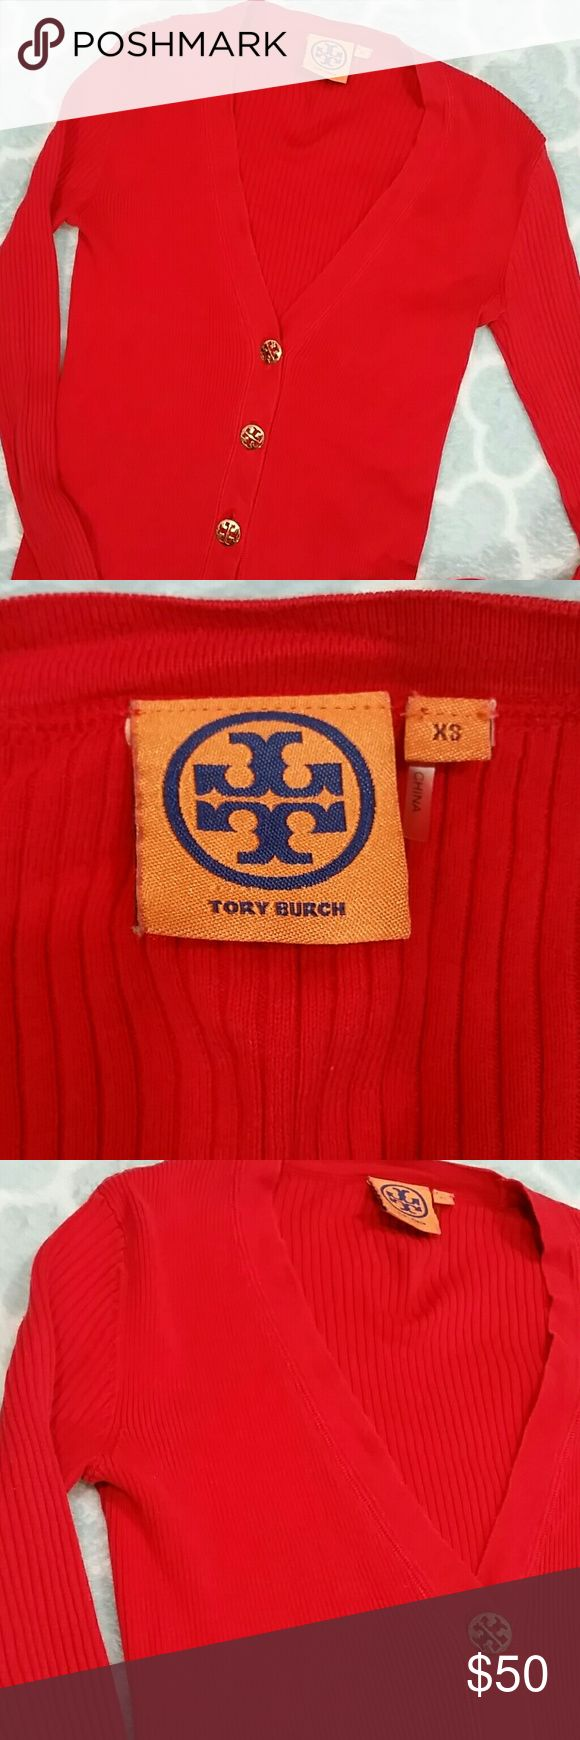 "Tory Burch Red Cardigan Sweater Size XS Tory Burch Red Cardigan Button Down Sweater. Gold Tory Burch Logo Buttons. 100% Cotton. Lightweight. Good used condition - see last picture for two tiny flaws in fabric. Color slightly less bright than appears in pictures.  Armpit to armpit- 13""  Length from shoulder - 21"" Tory Burch Sweaters Cardigans"